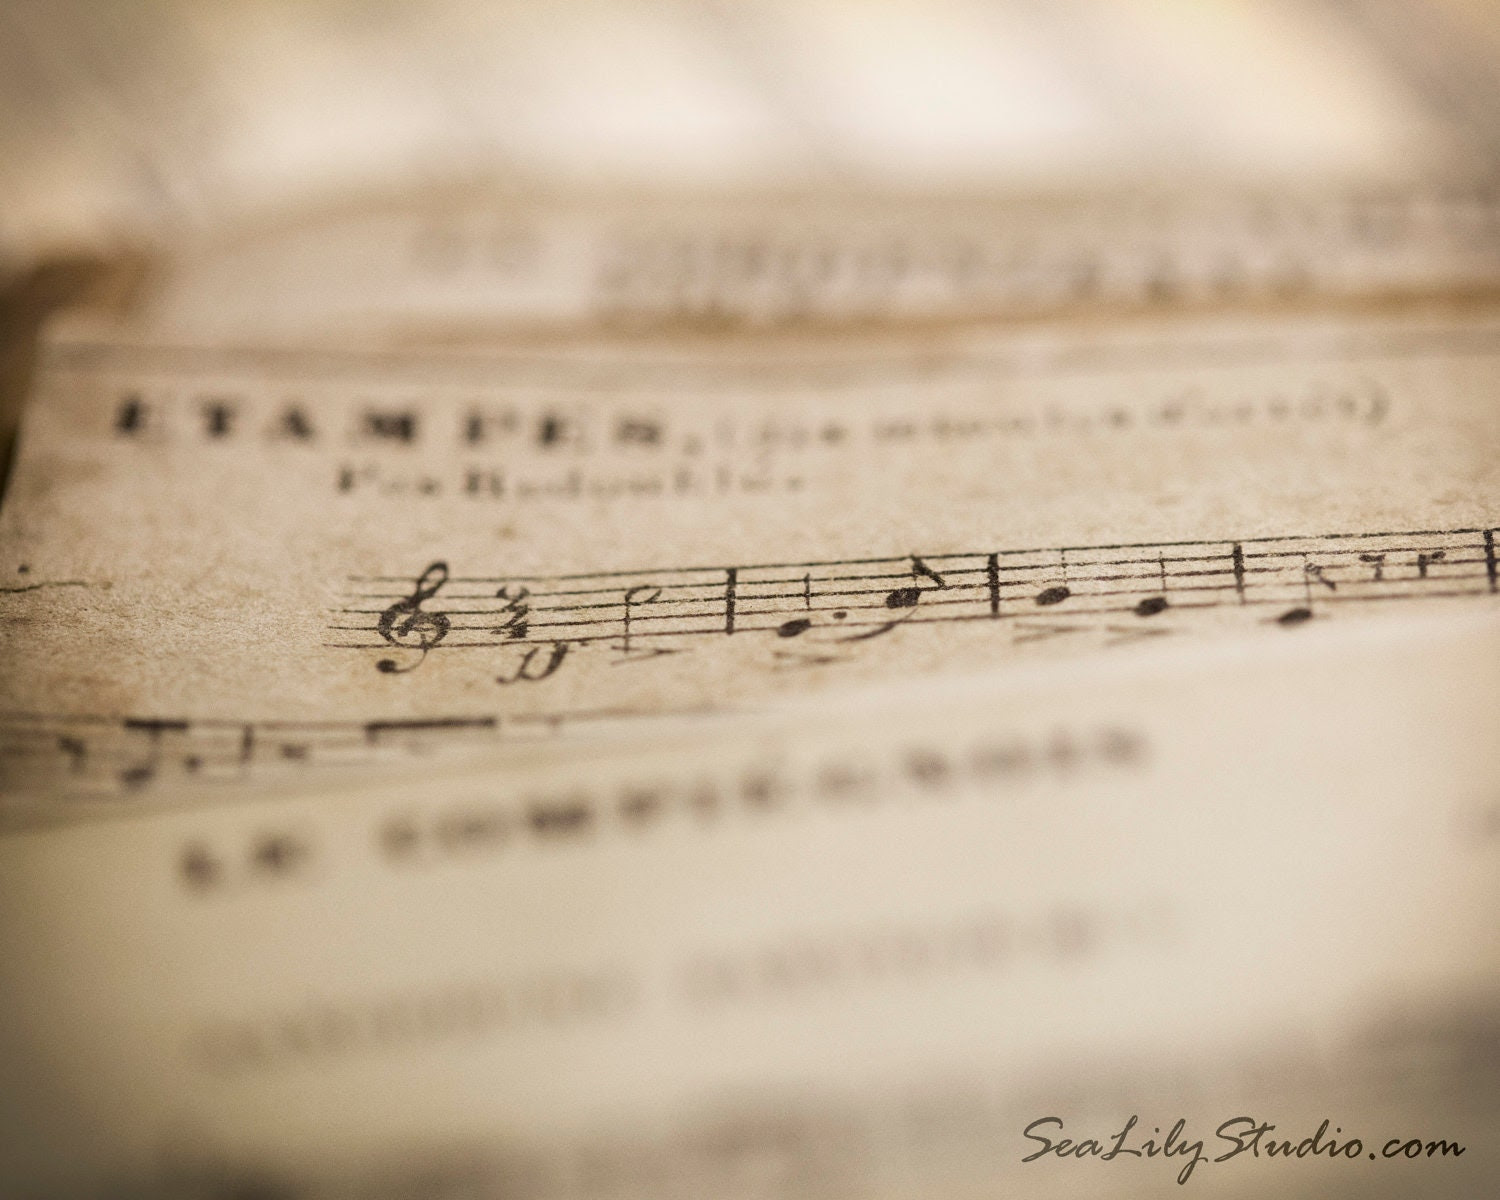 Vintage Sheet Music - 8x10 - Fine Art Print - SeaLilyStudio